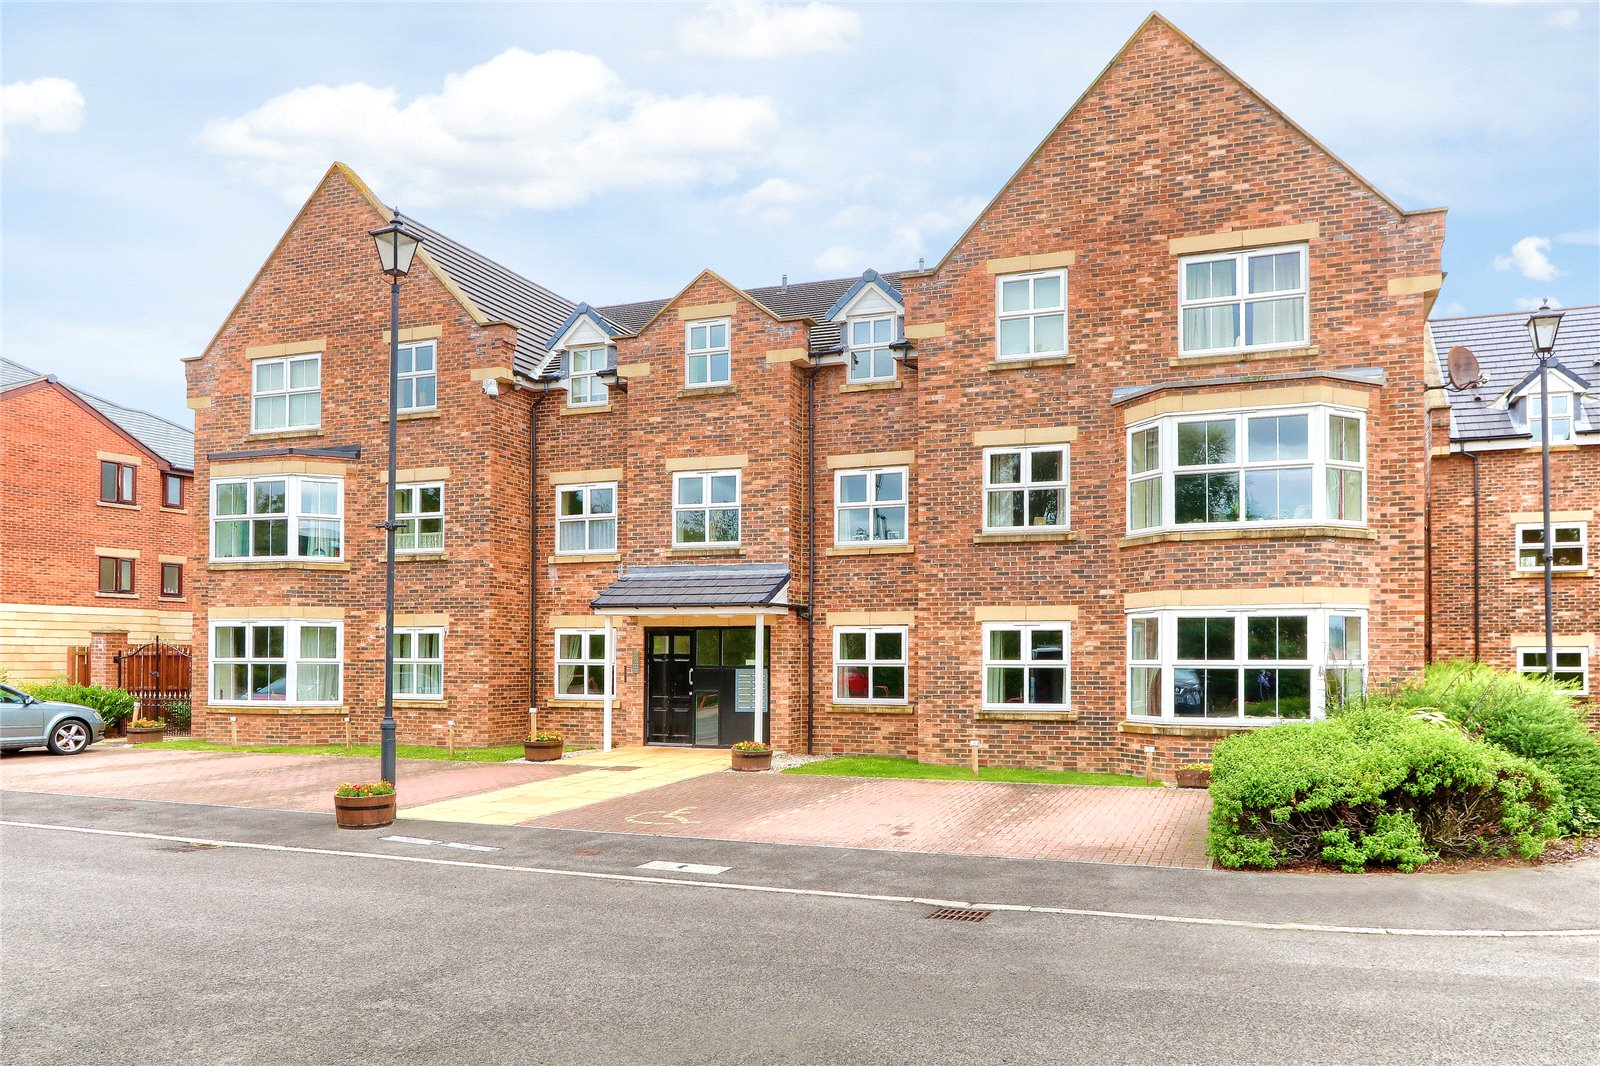 2 bed for sale in West End Manor, The Copse - Property Image 1